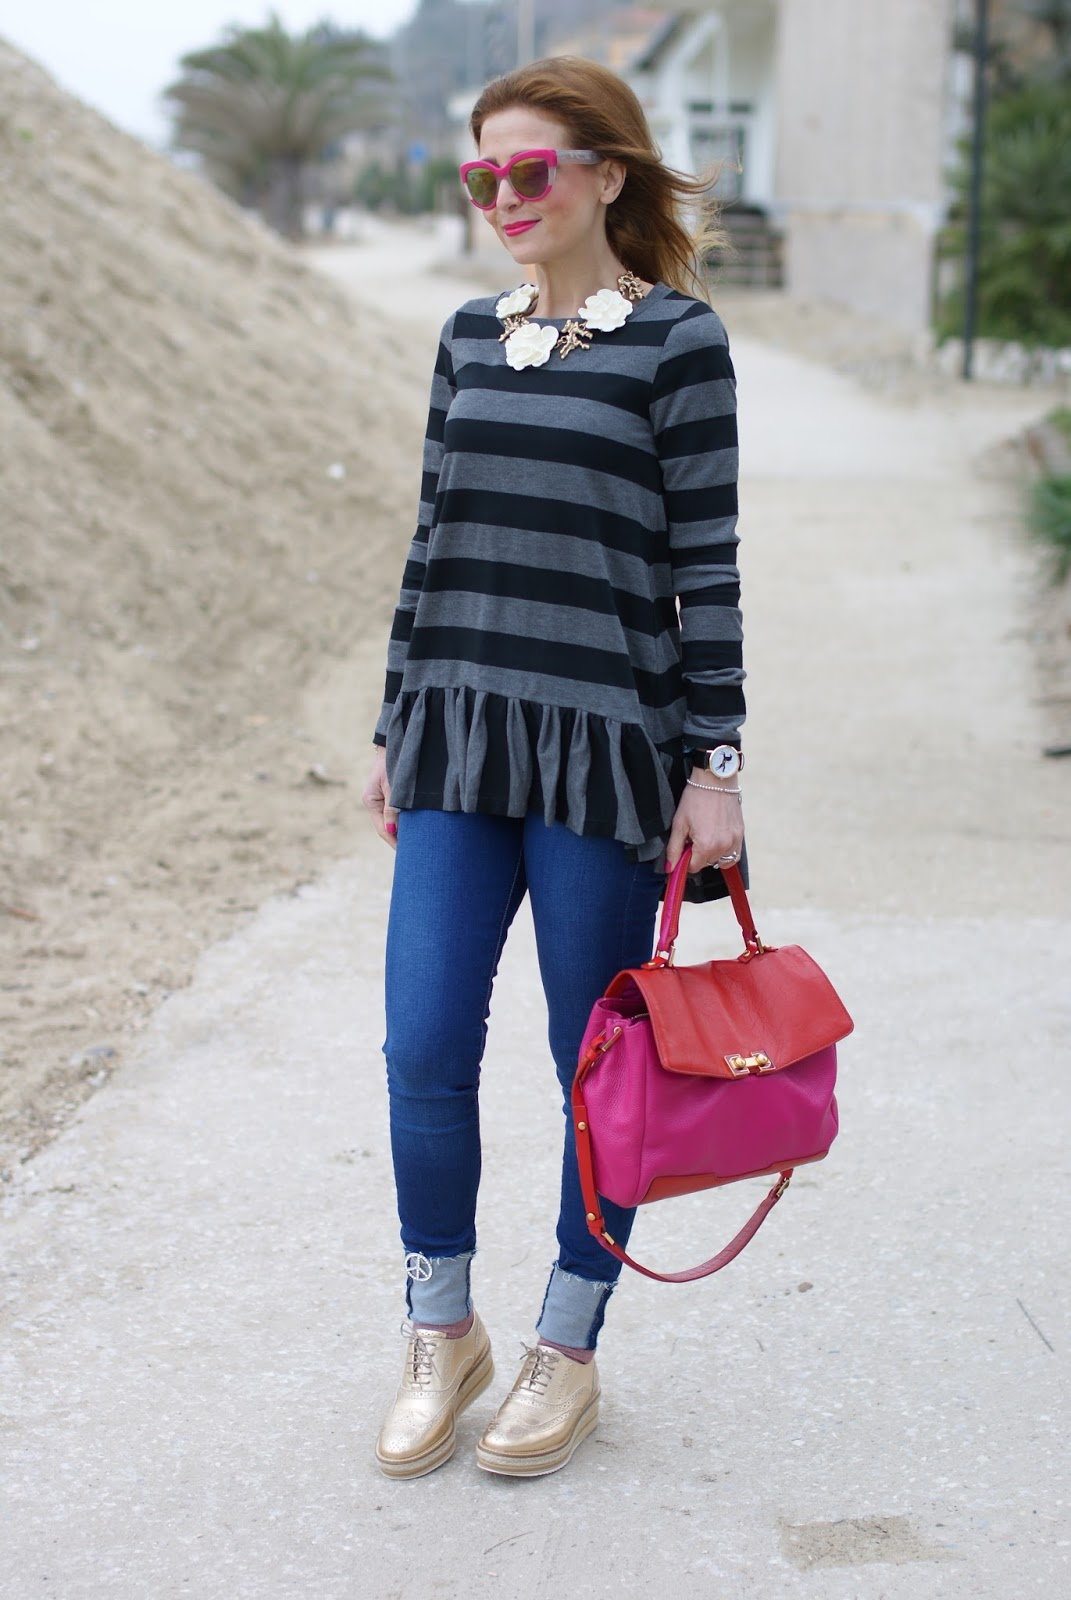 stripes and ruffles on Fashion and Cookies fashion blog, fashion blogger style